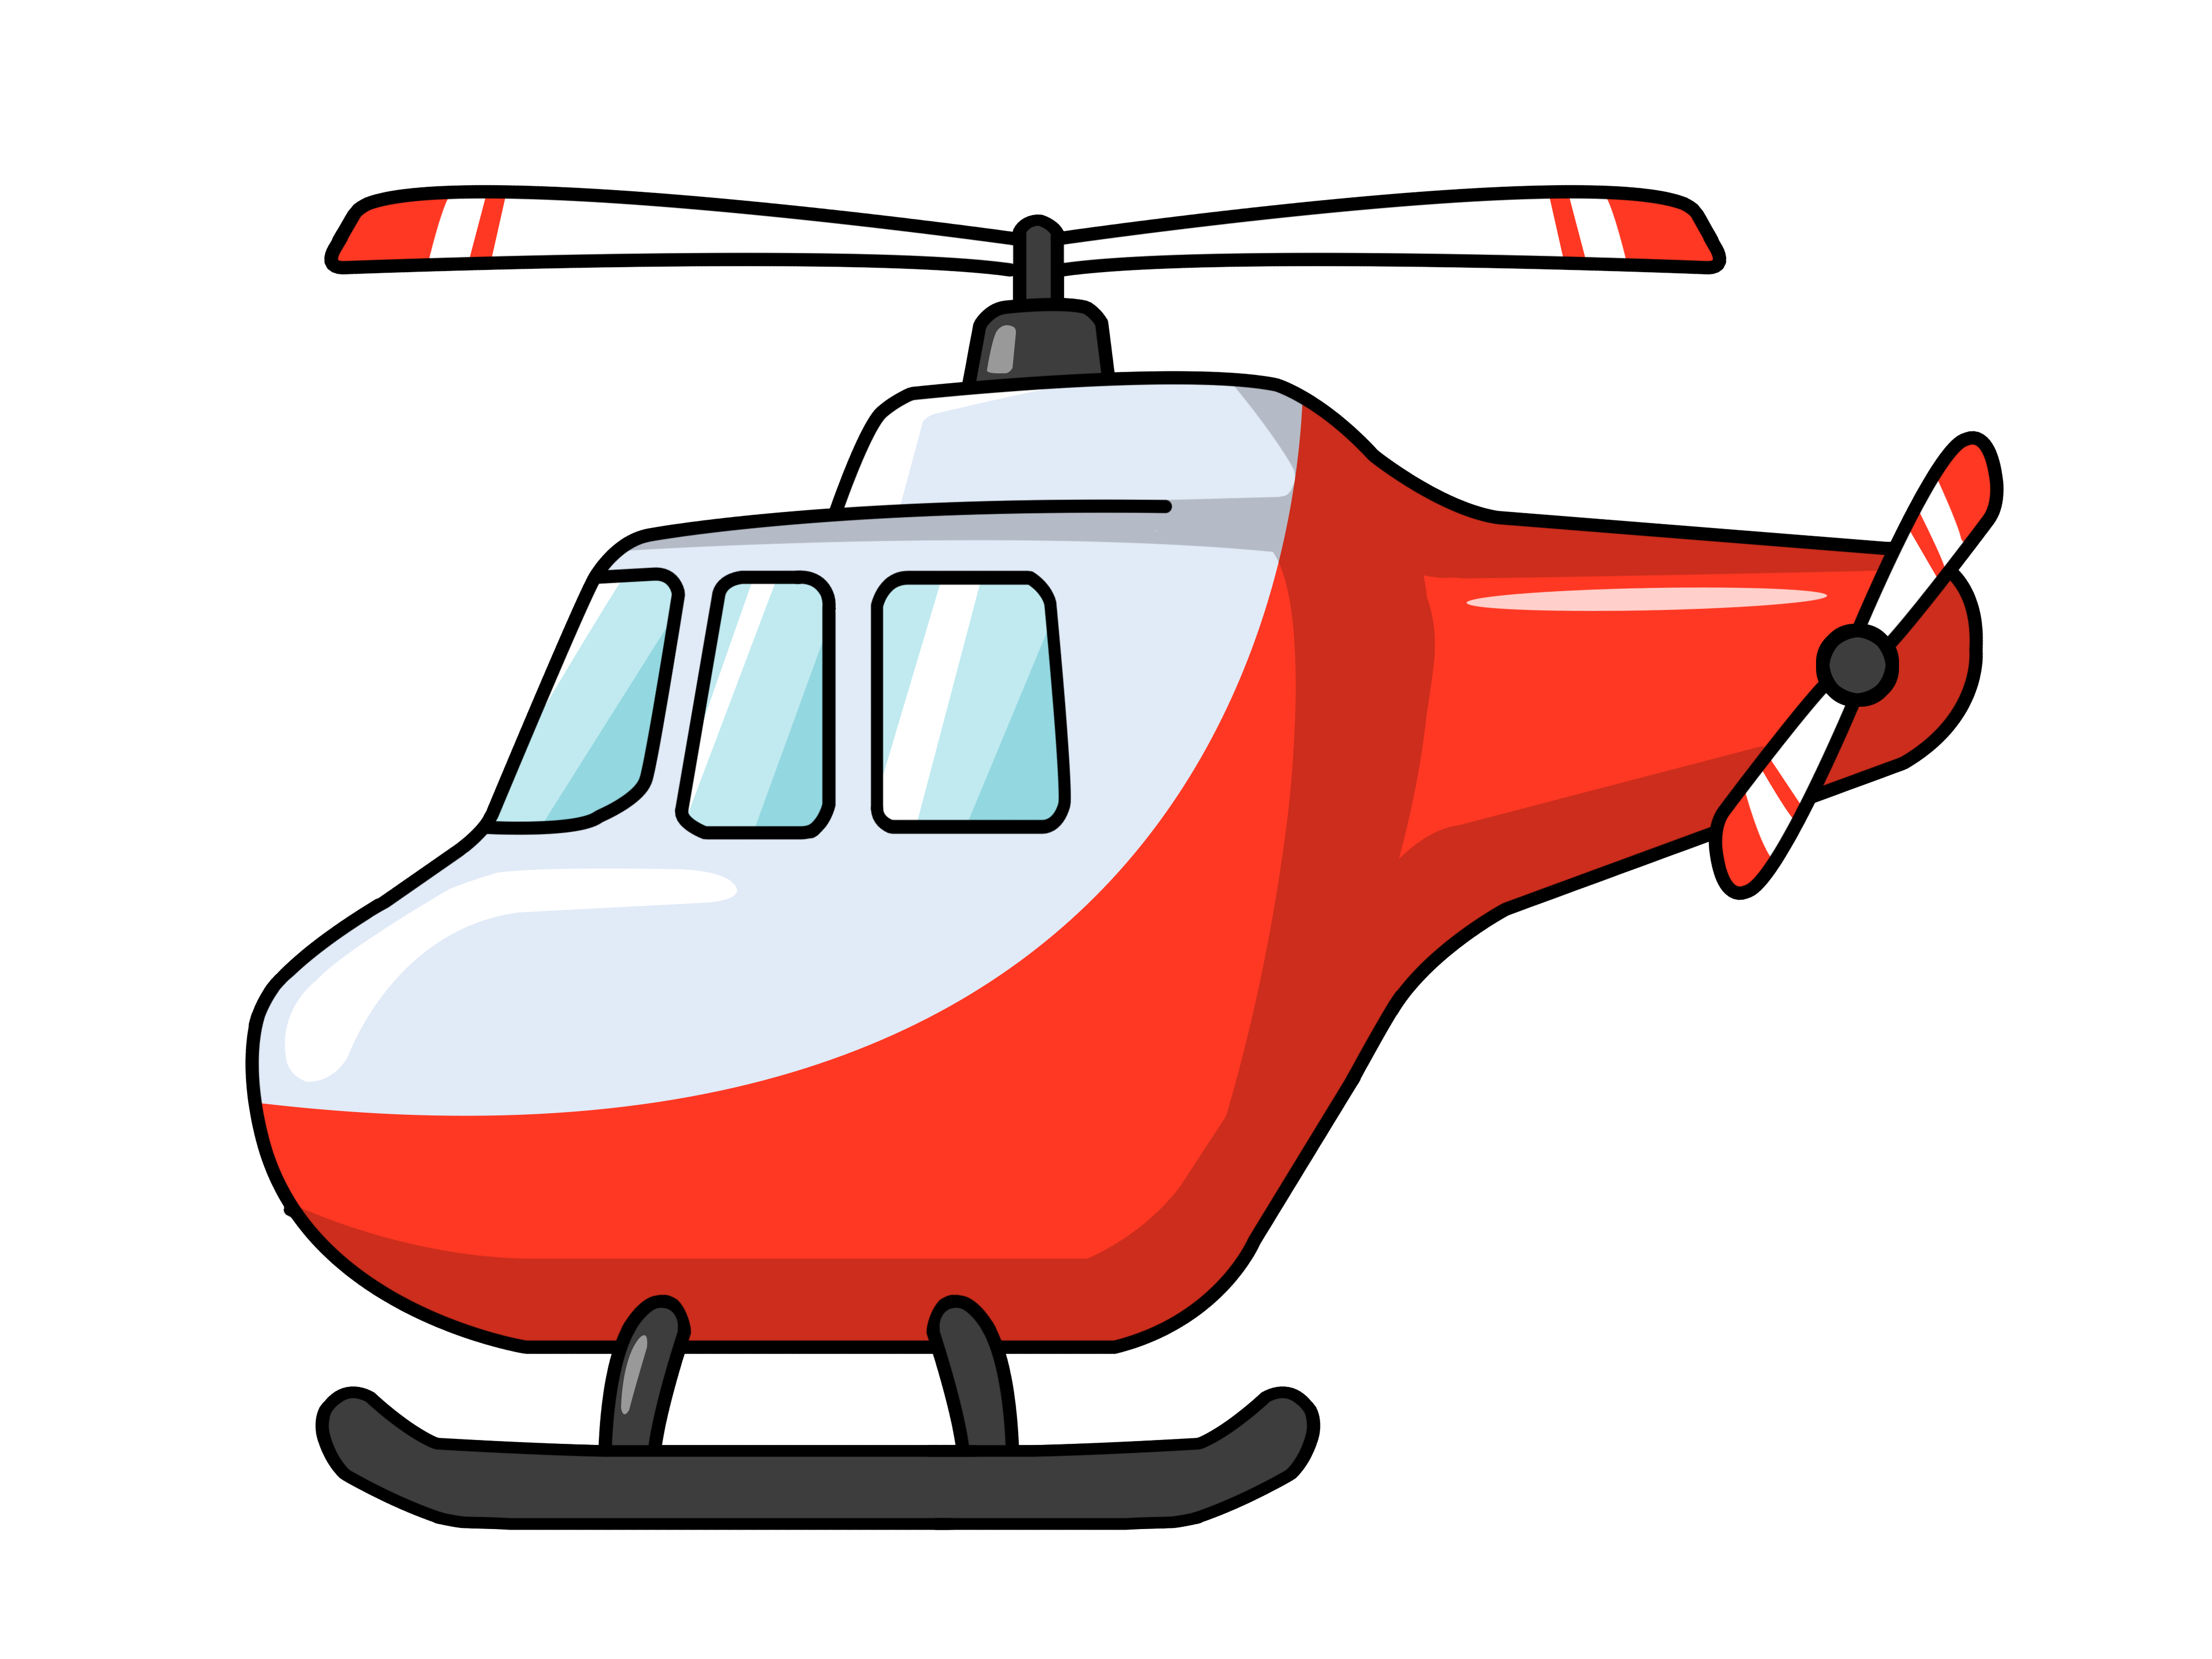 banner Clip art on panda. Helicopter clipart